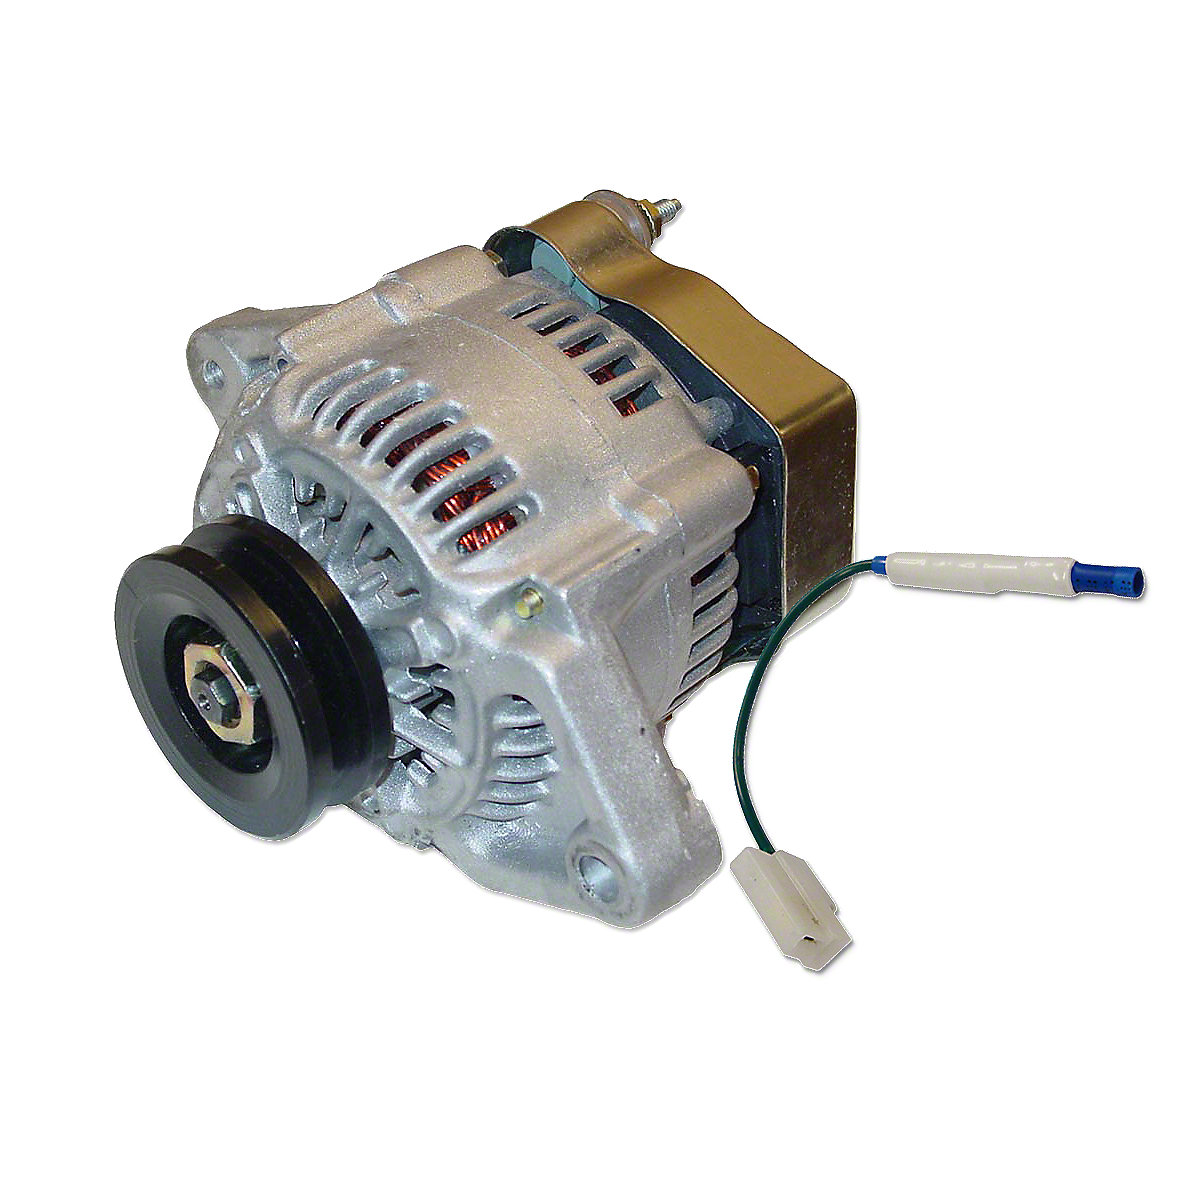 Mini 41 Max Amp 12 Volt Alternator With Pulley and Diode For Allis Chalmers Tractor.